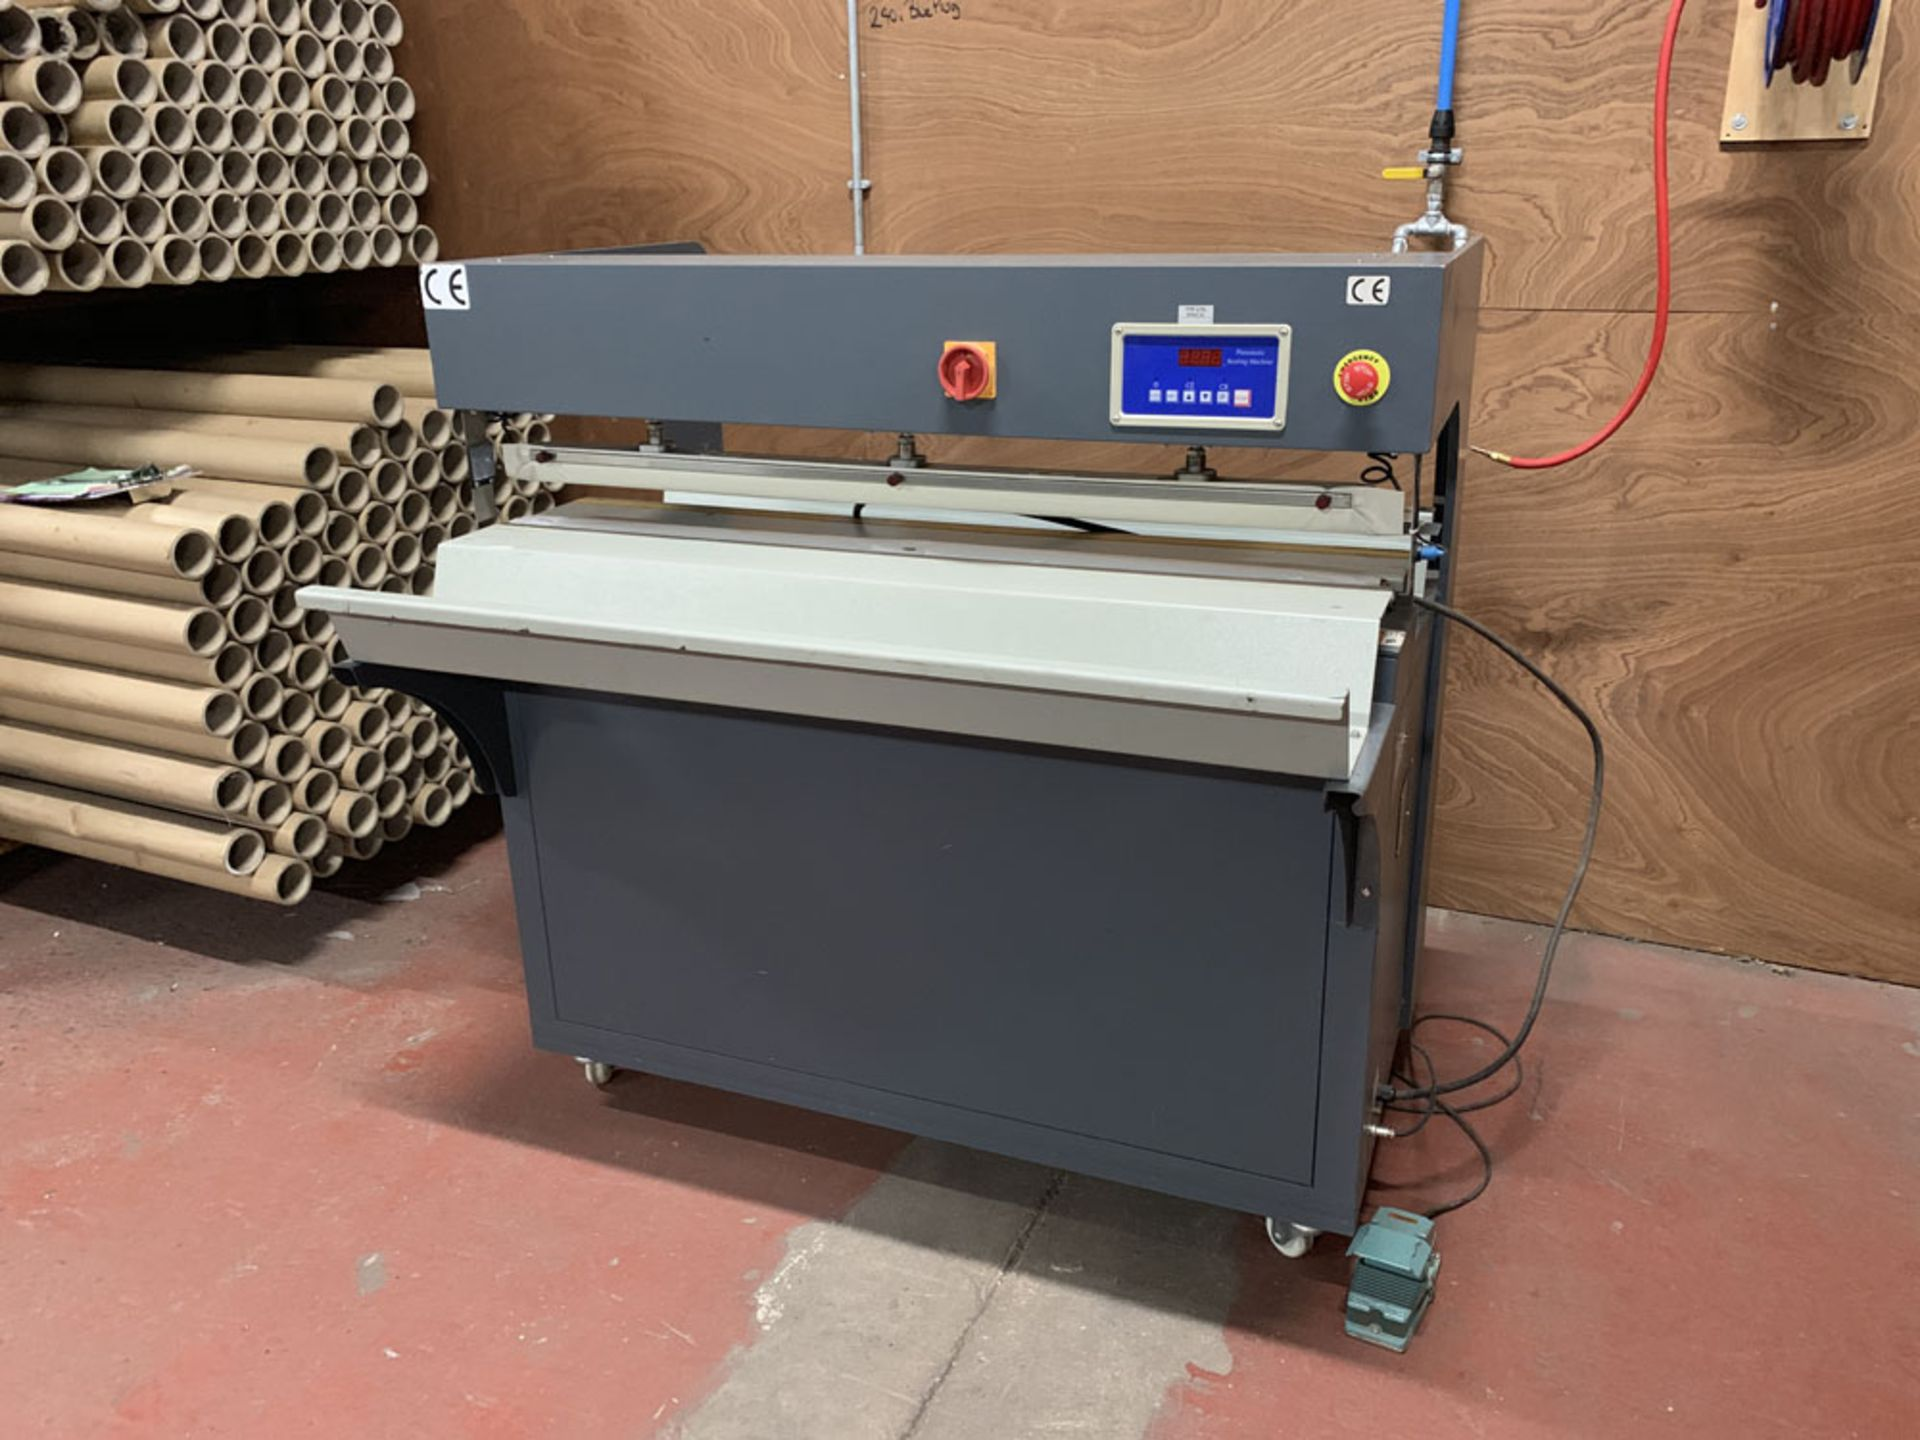 Lot 15 - TTF Ltd Model FMQP Pneumatic Sealing Machine. Single Phase. Year 2013.